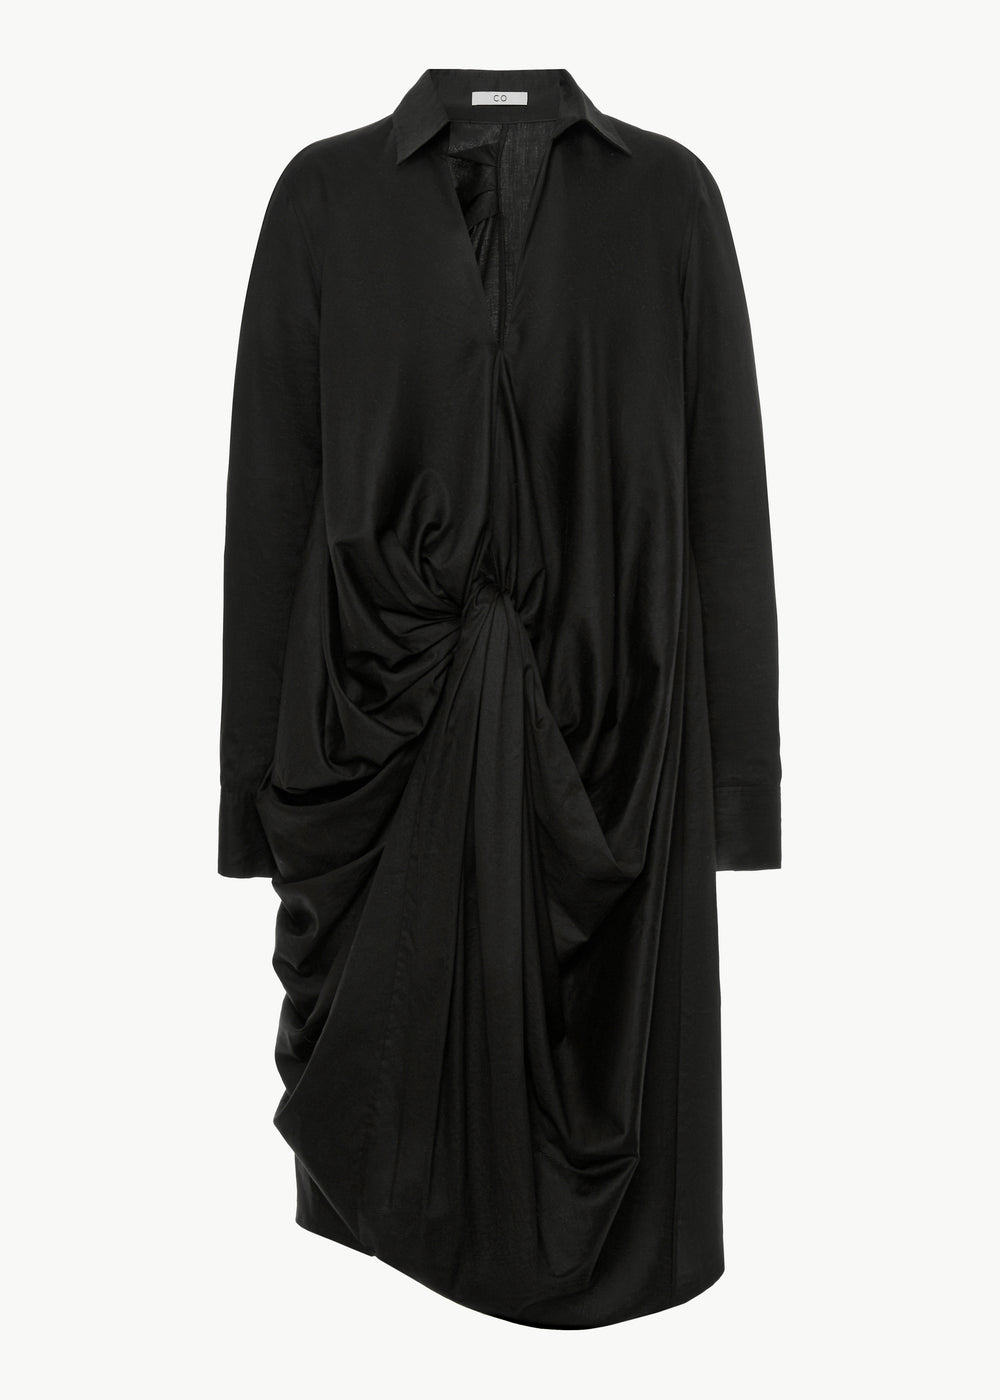 Knotted Shirtdress in Japanese Cotton - Black - CO